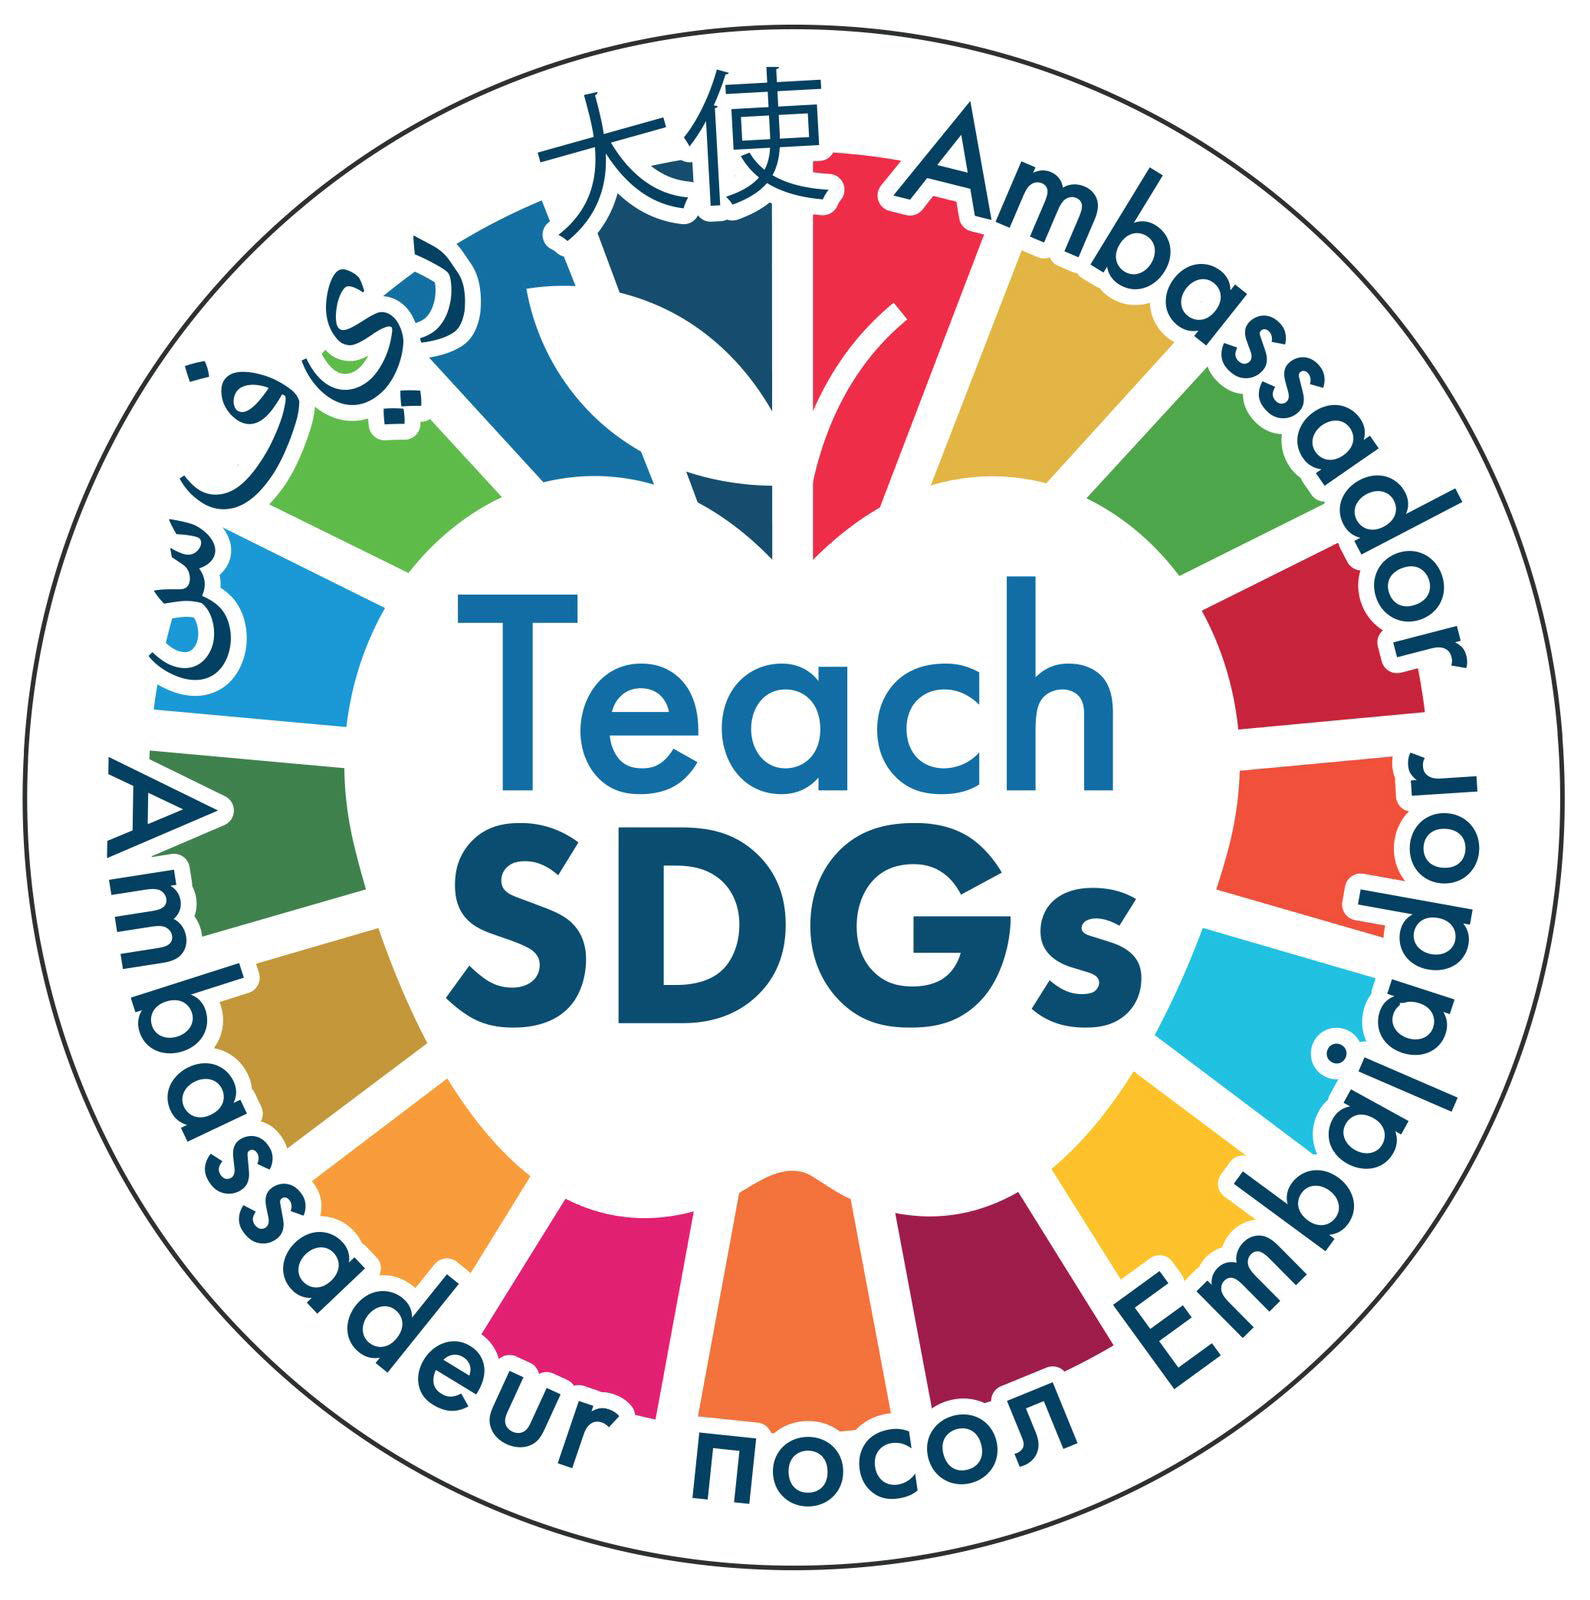 BCIS teachers can connect with over 400 international teachers in developing global PLCs around sustainable education.